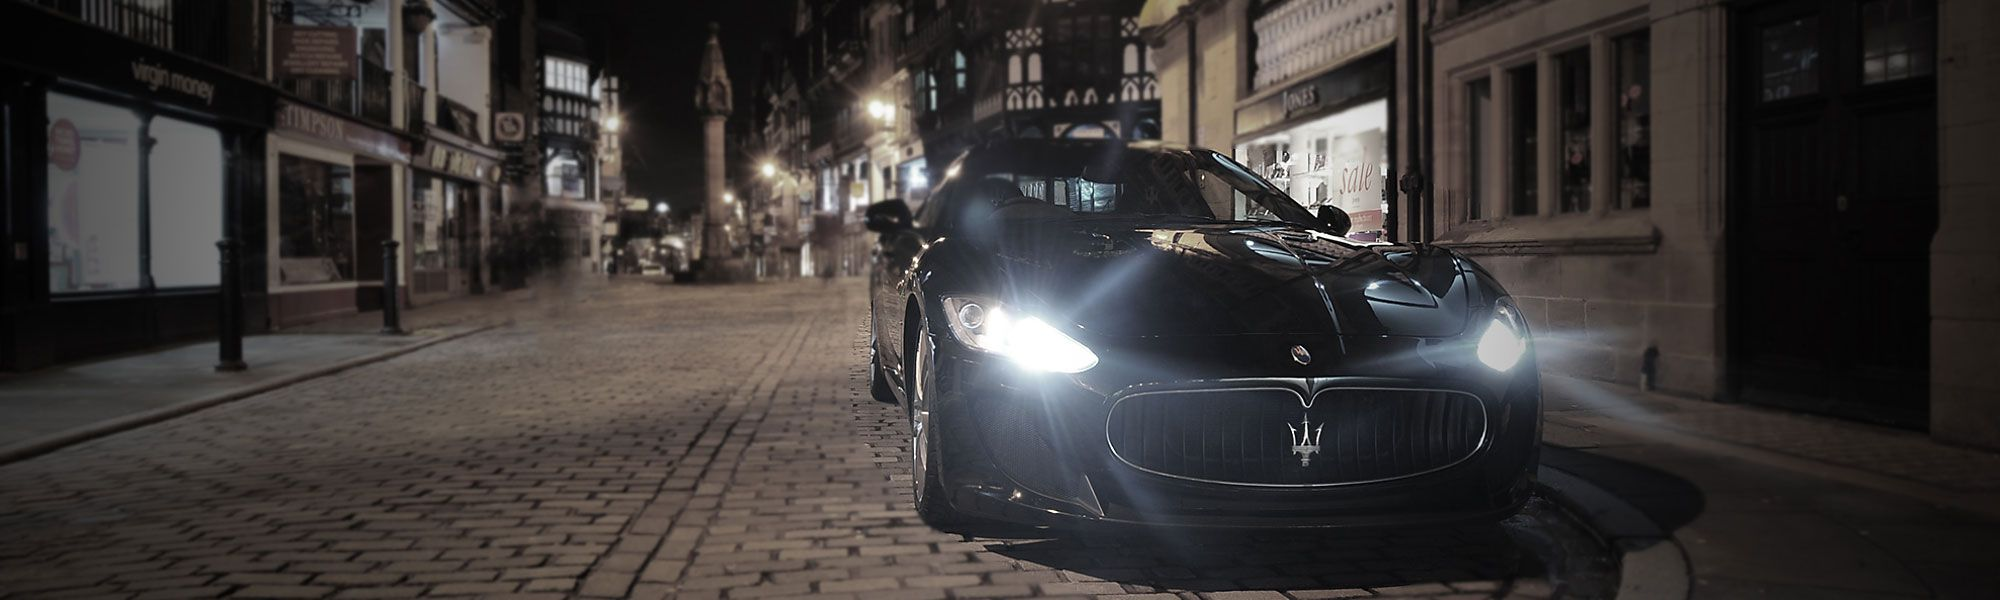 Maserati in Chester City centre